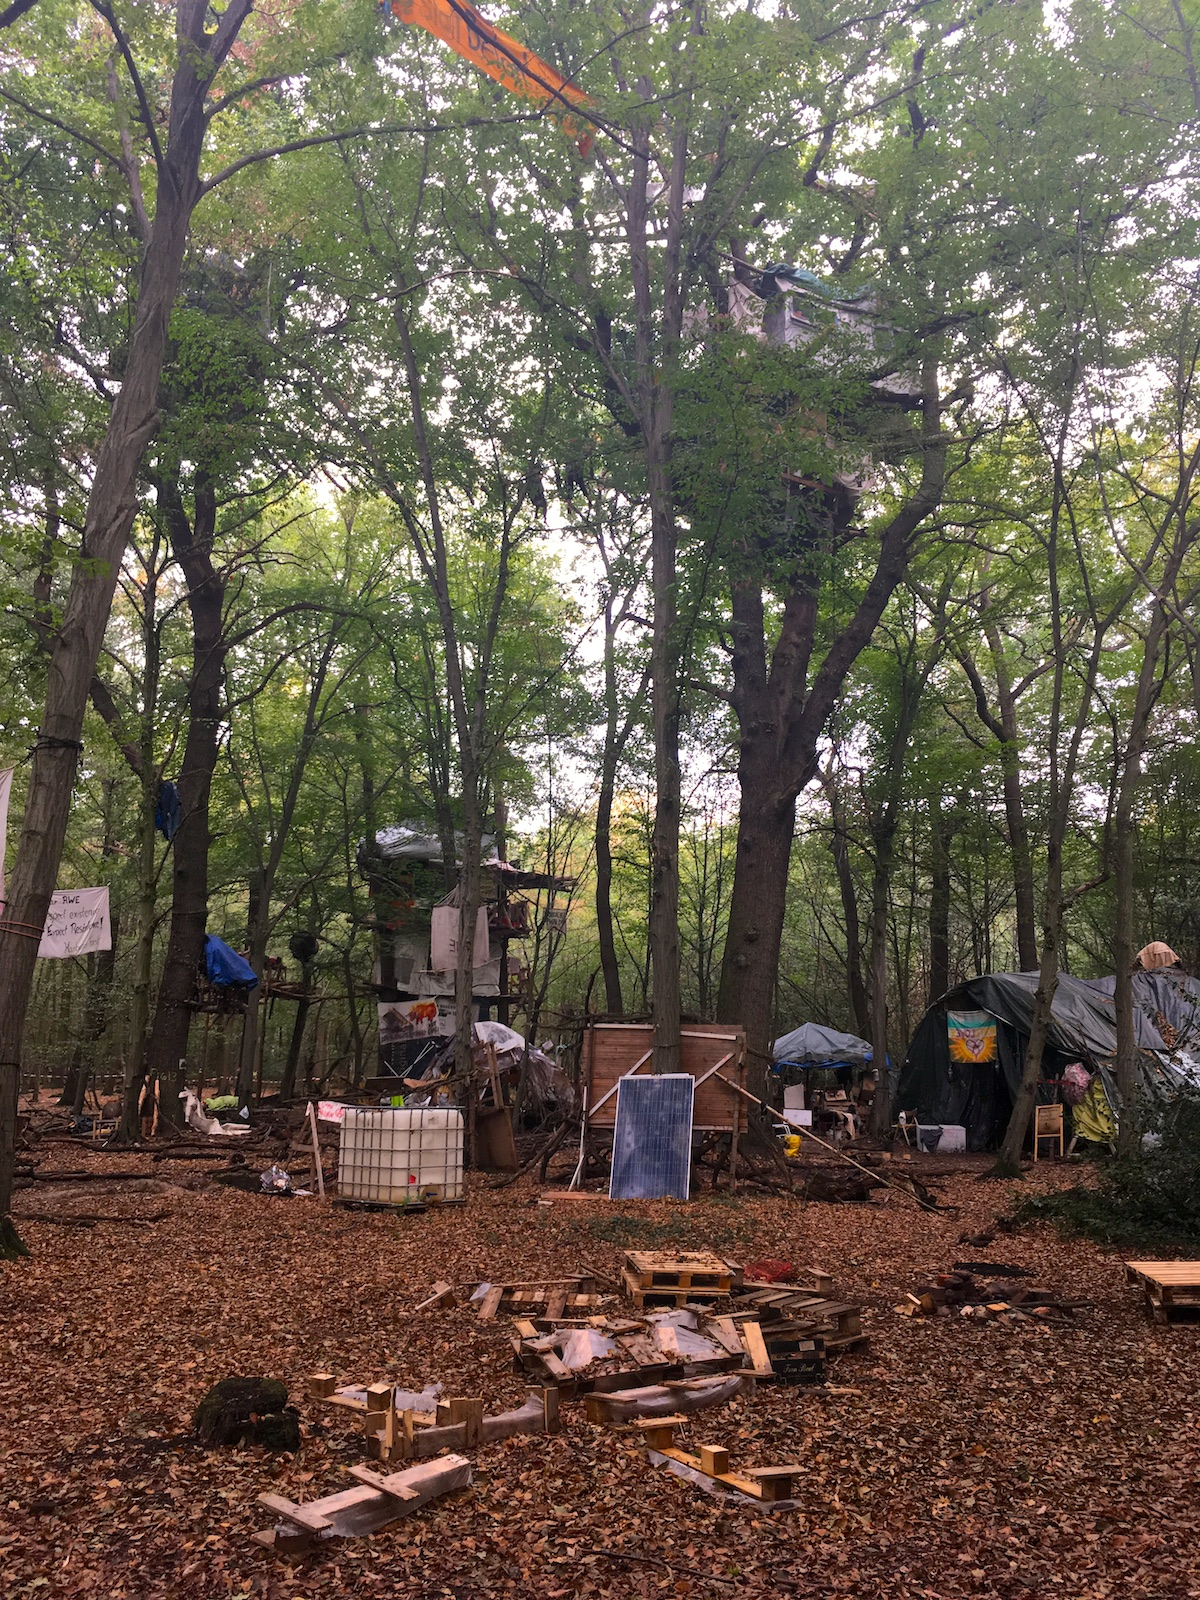 hambacherforst august 2018